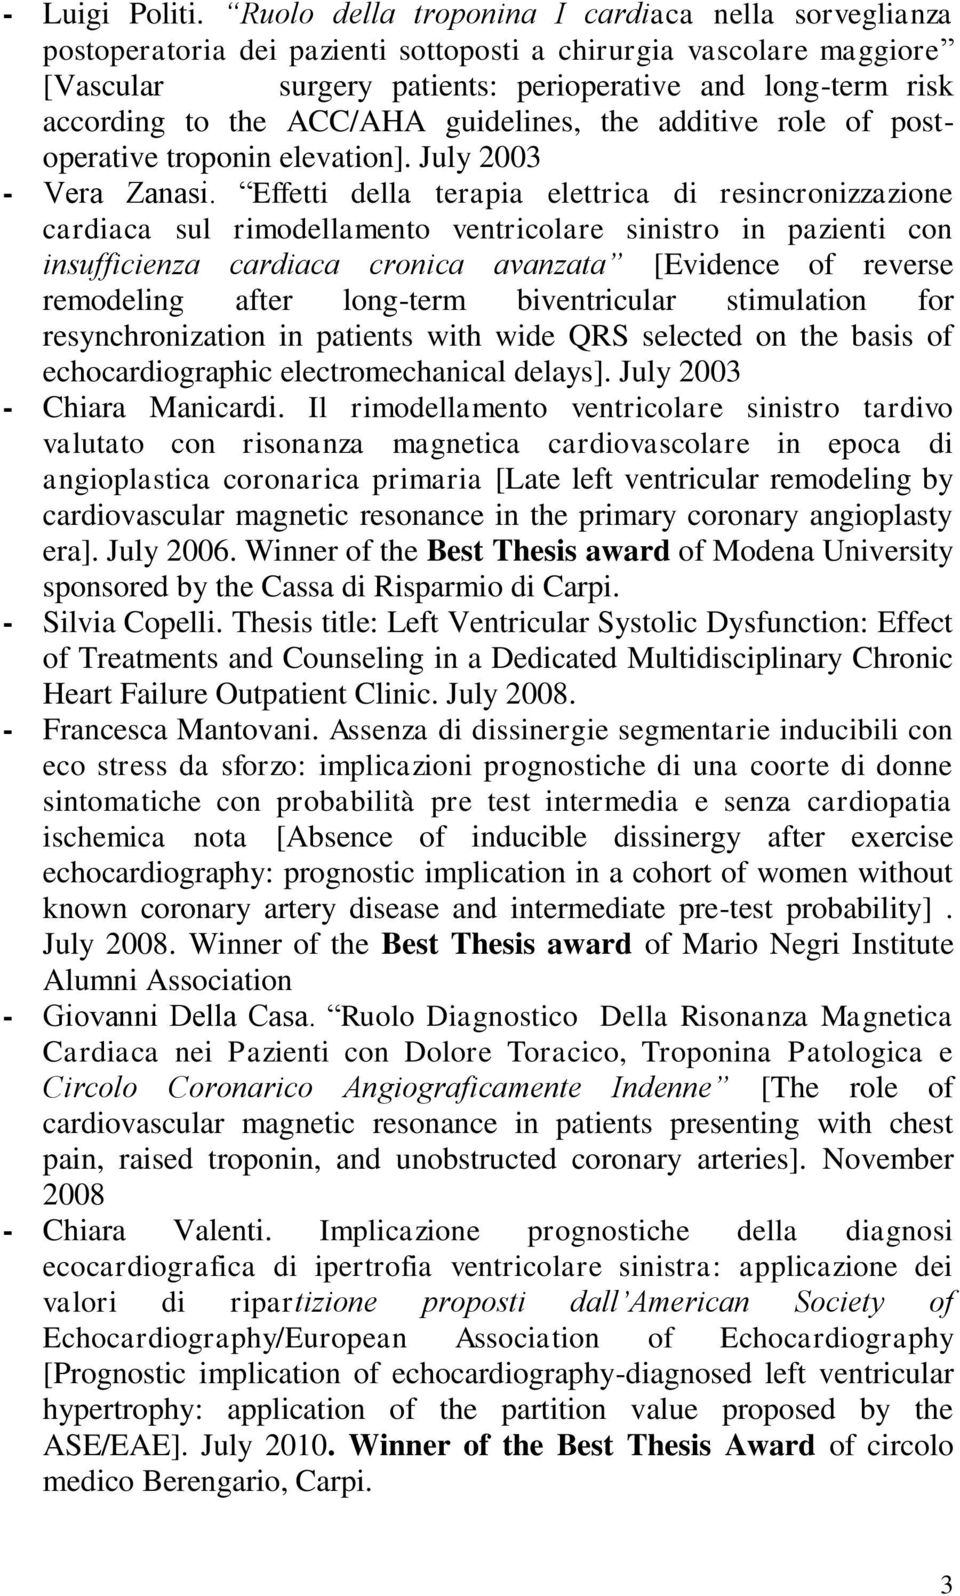 ACC/AHA guidelines, the additive role of postoperative troponin elevation]. July 2003 - Vera Zanasi.